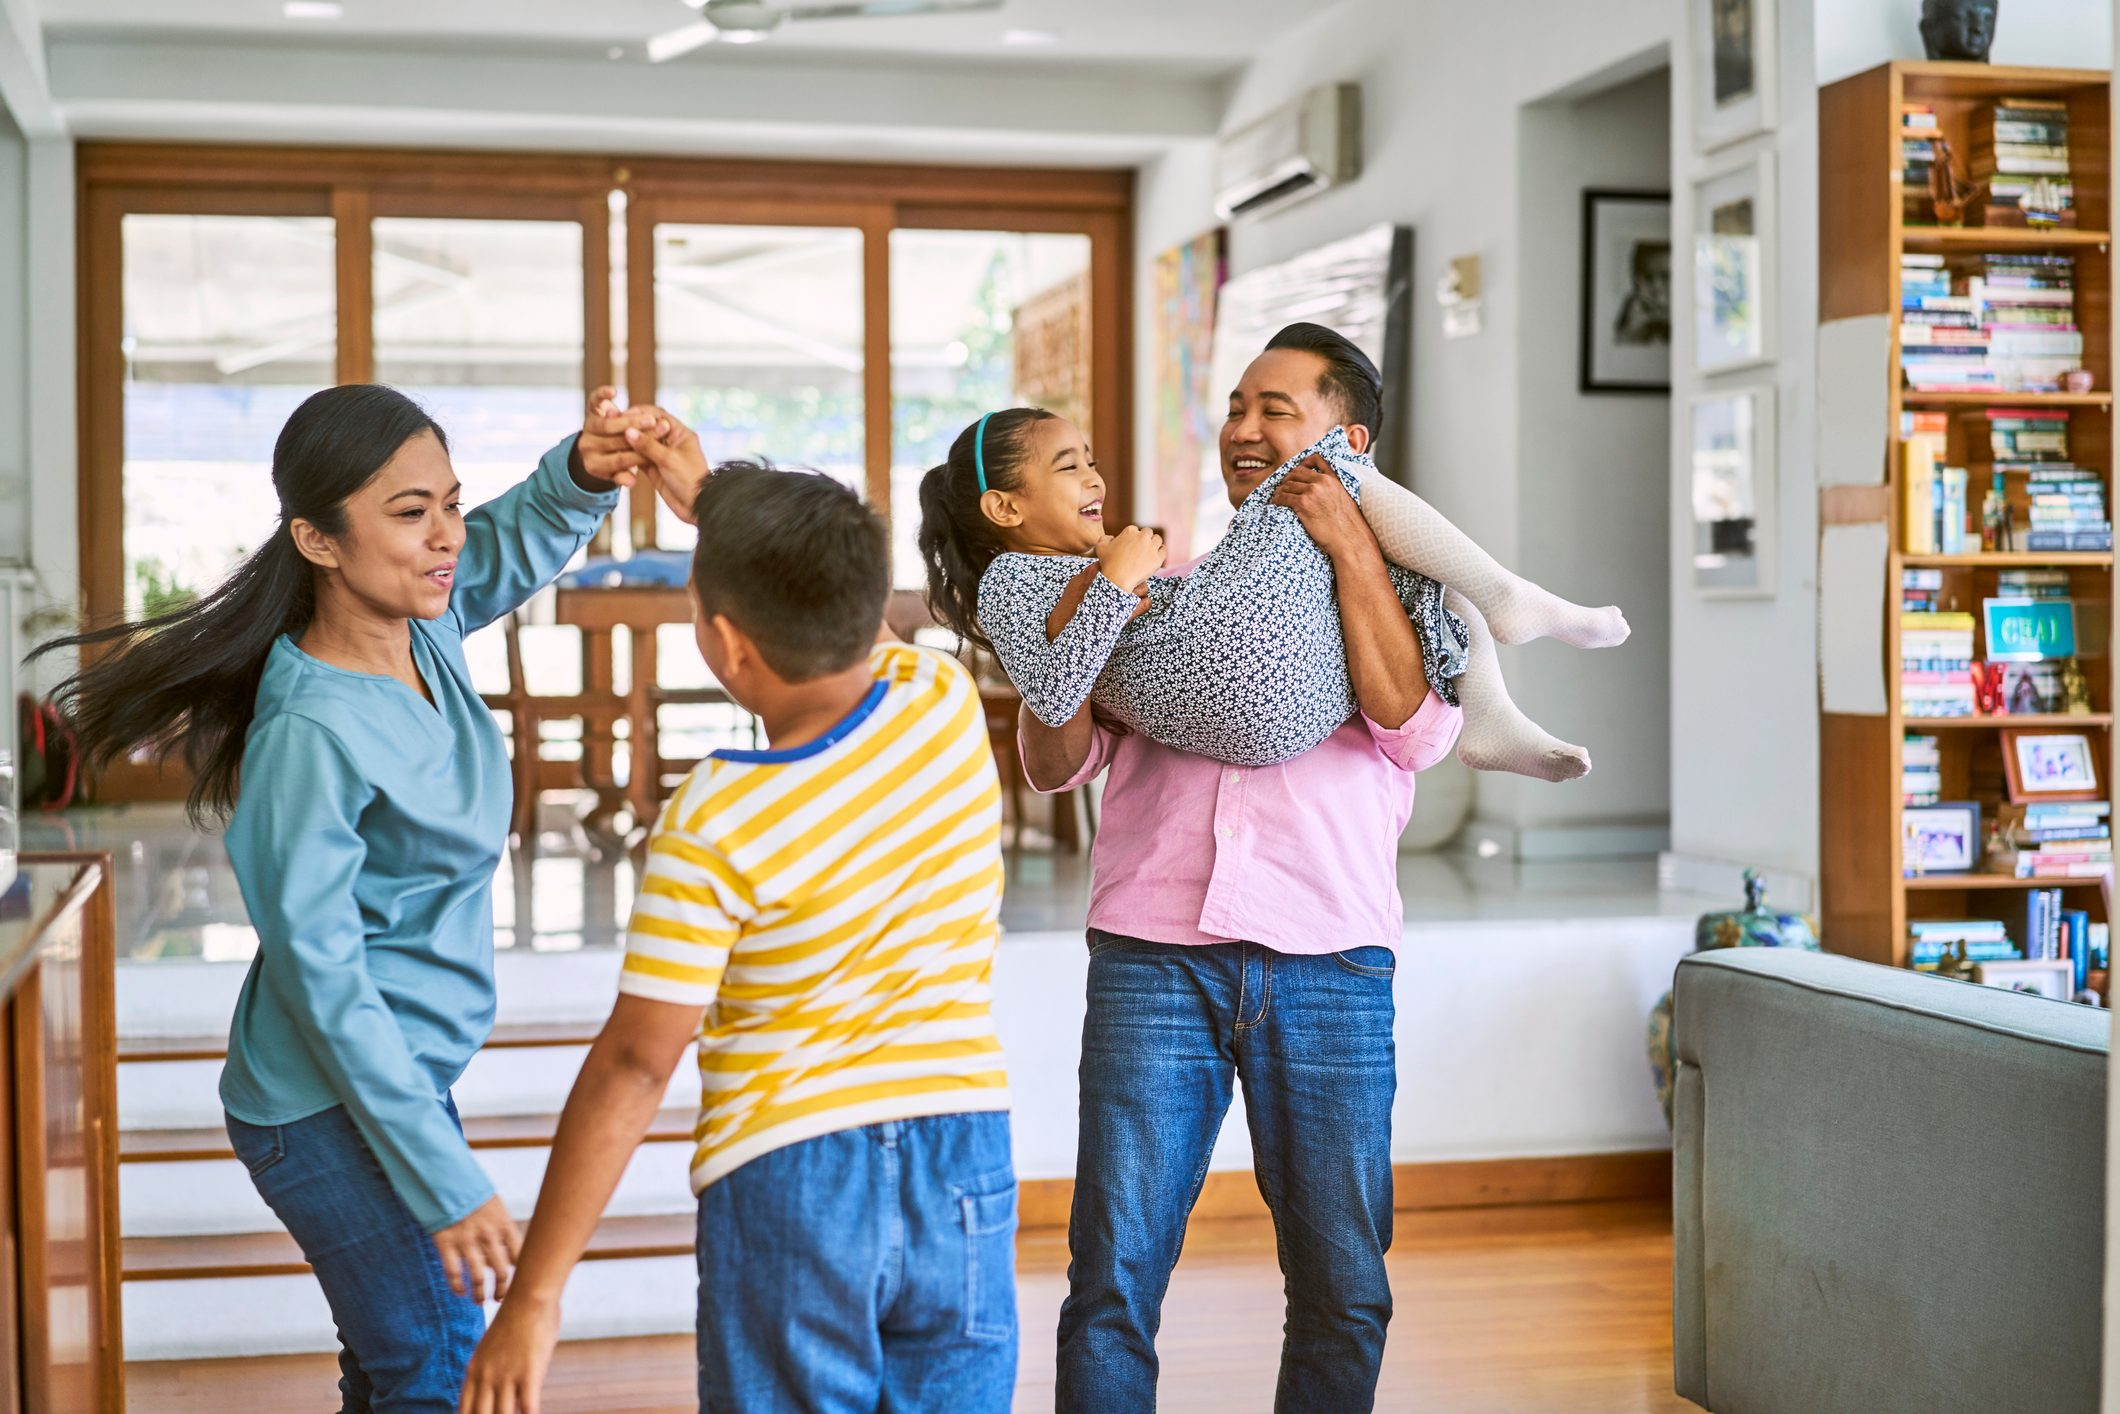 Happy family enjoying while dancing at home